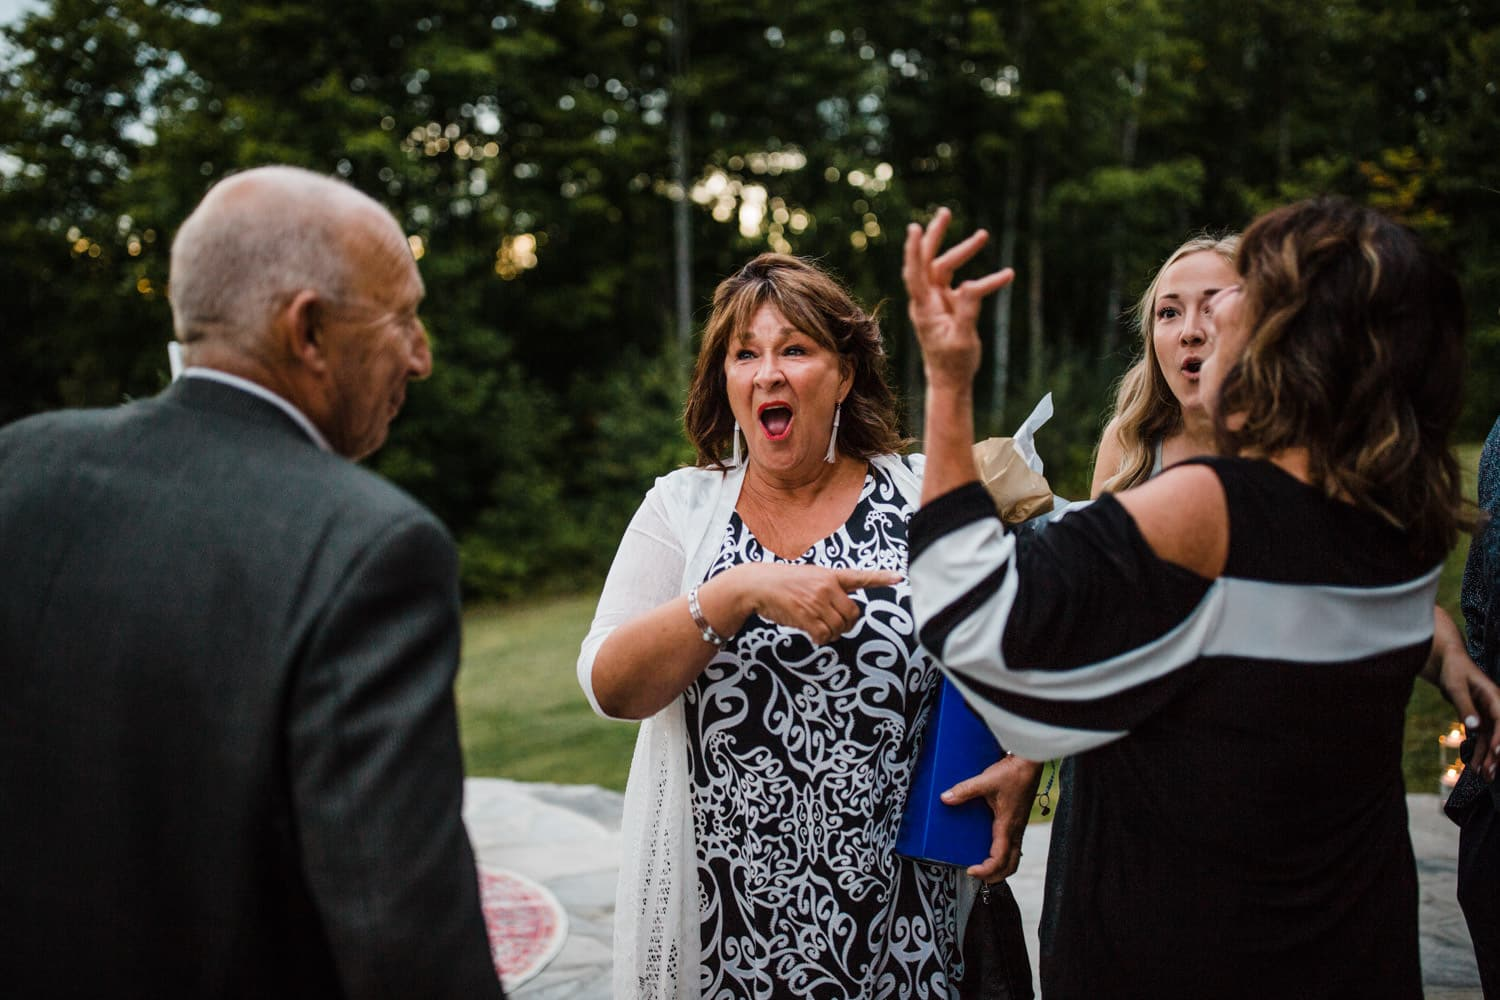 guests react after arriving at as surprise wedding reception